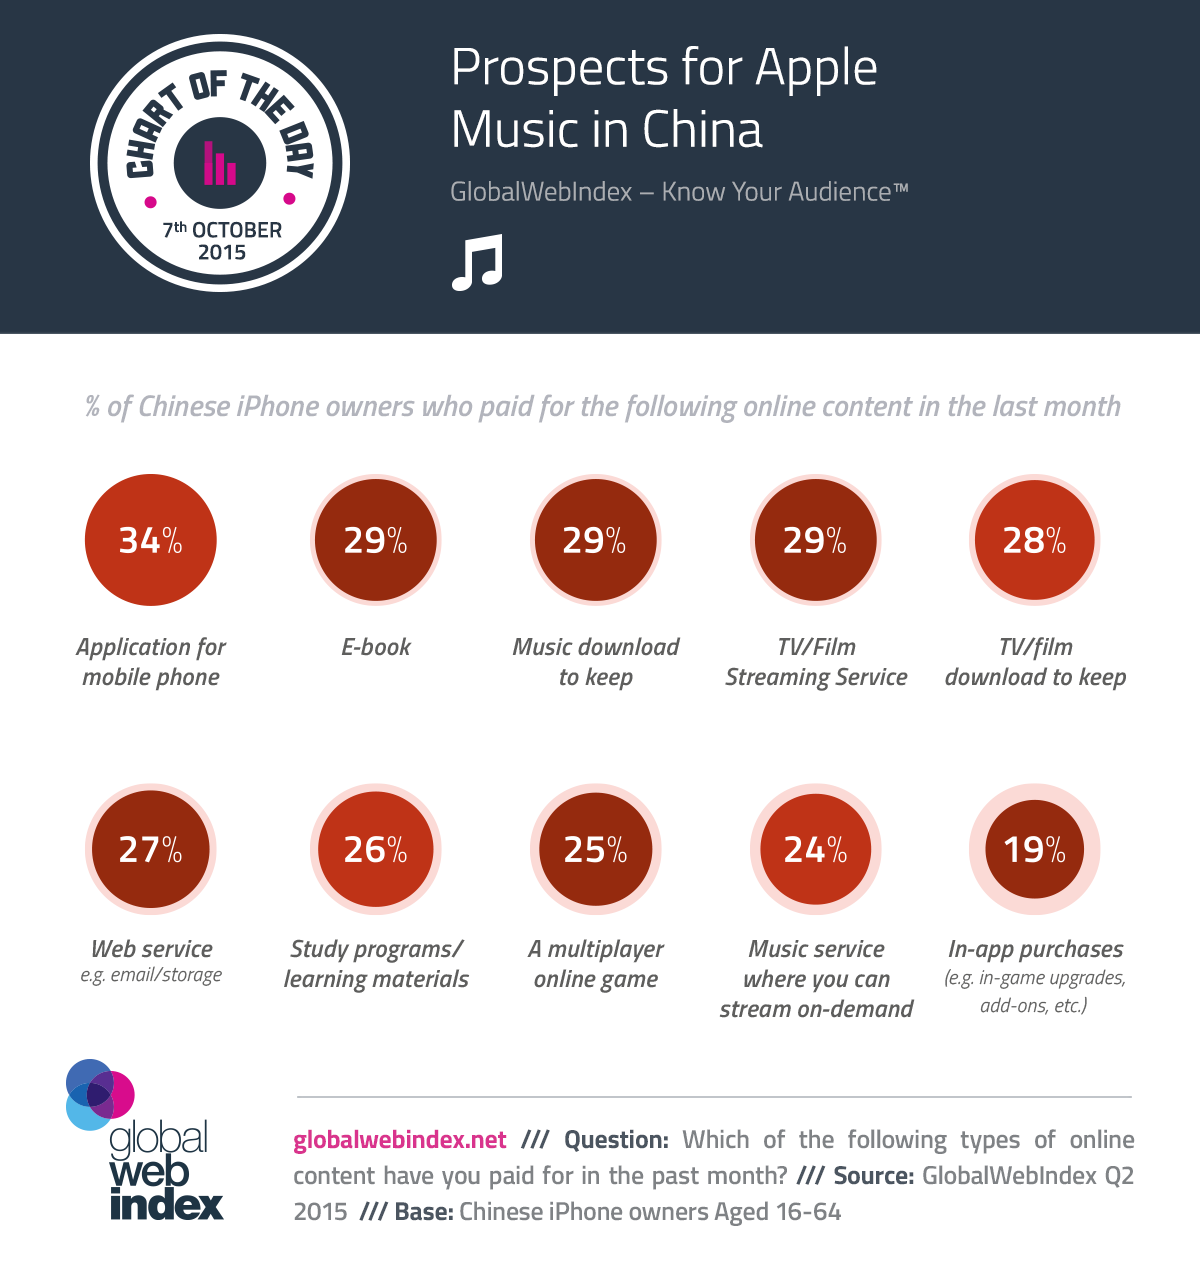 7th-Oct-2015-Prospects-for-Apple-Music-in-China